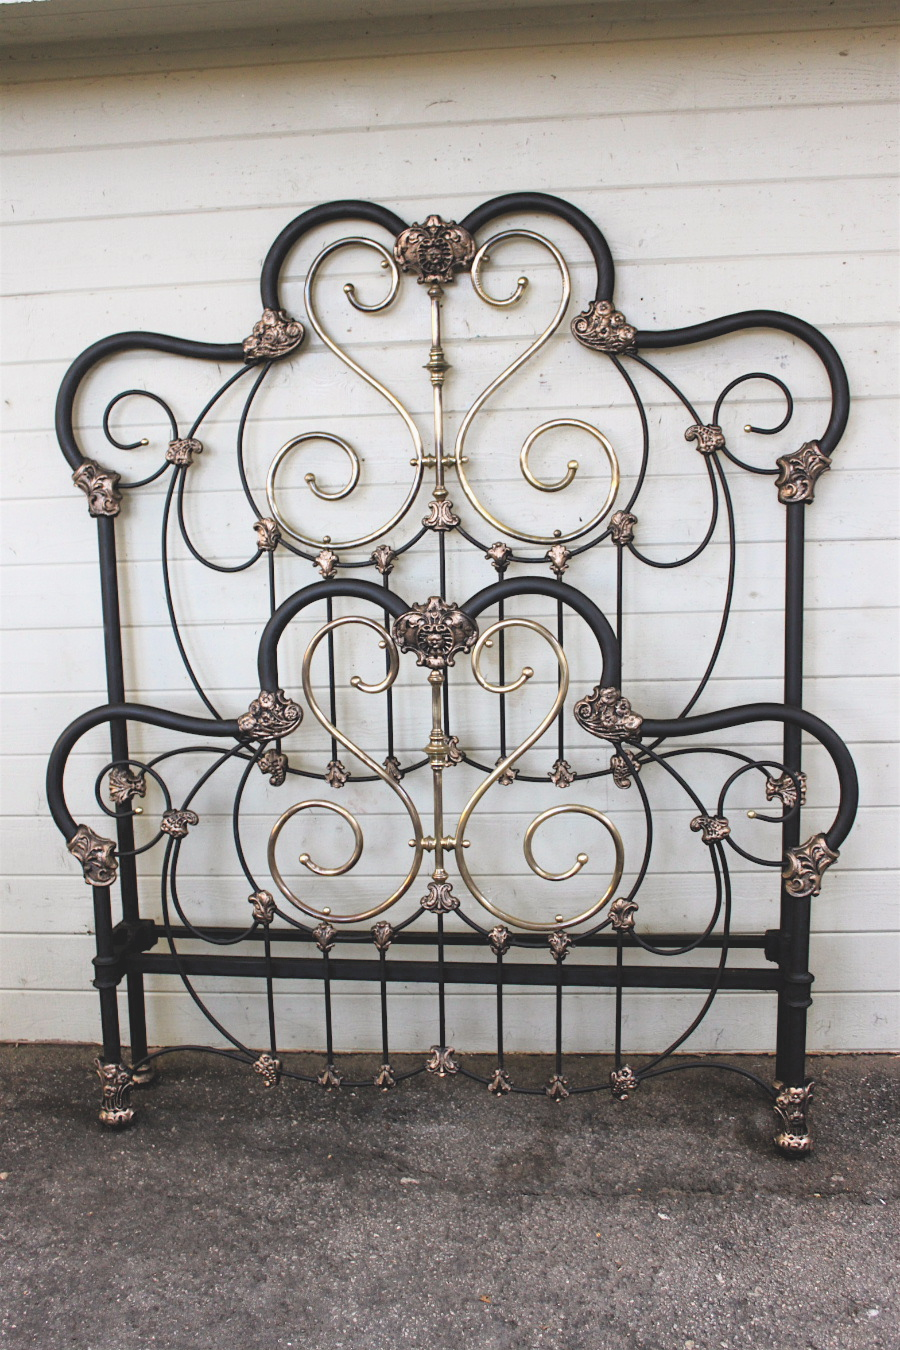 Antique Iron Bed 7 Cathouse Antique Iron Beds